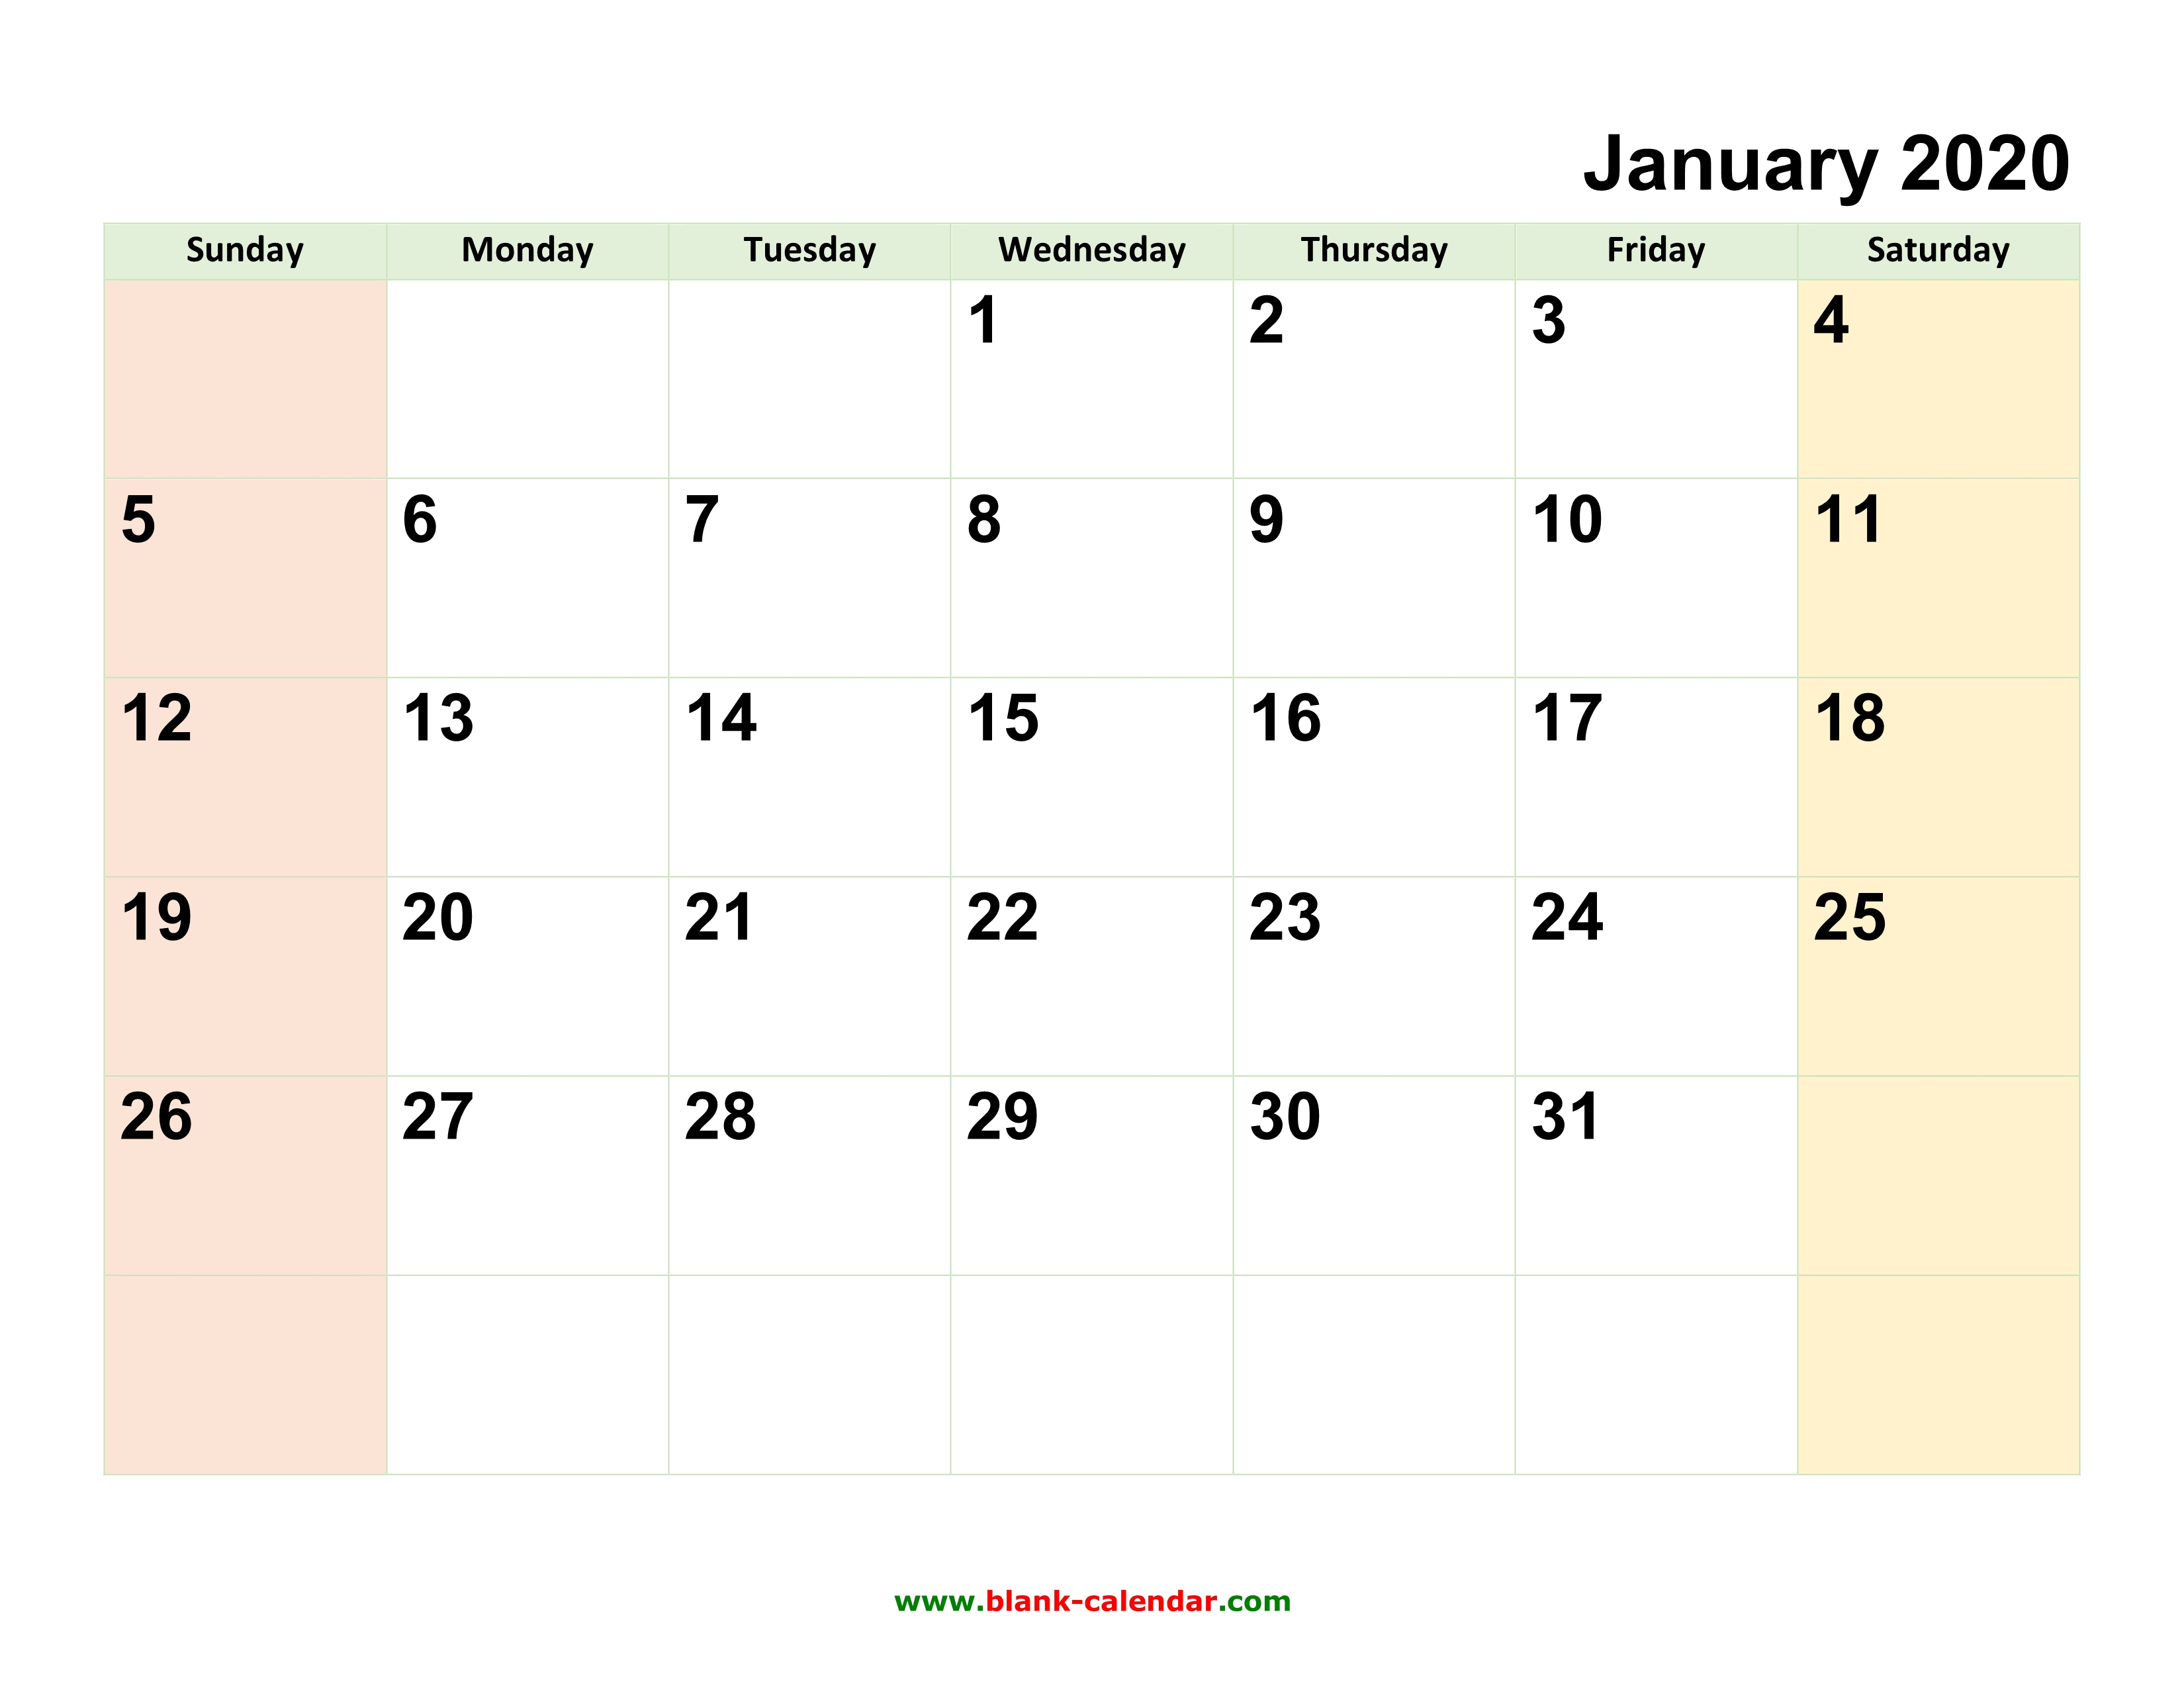 Monthly Calendar 2020 | Free Download, Editable And Printable pertaining to 2020 Calendar You Can Edit